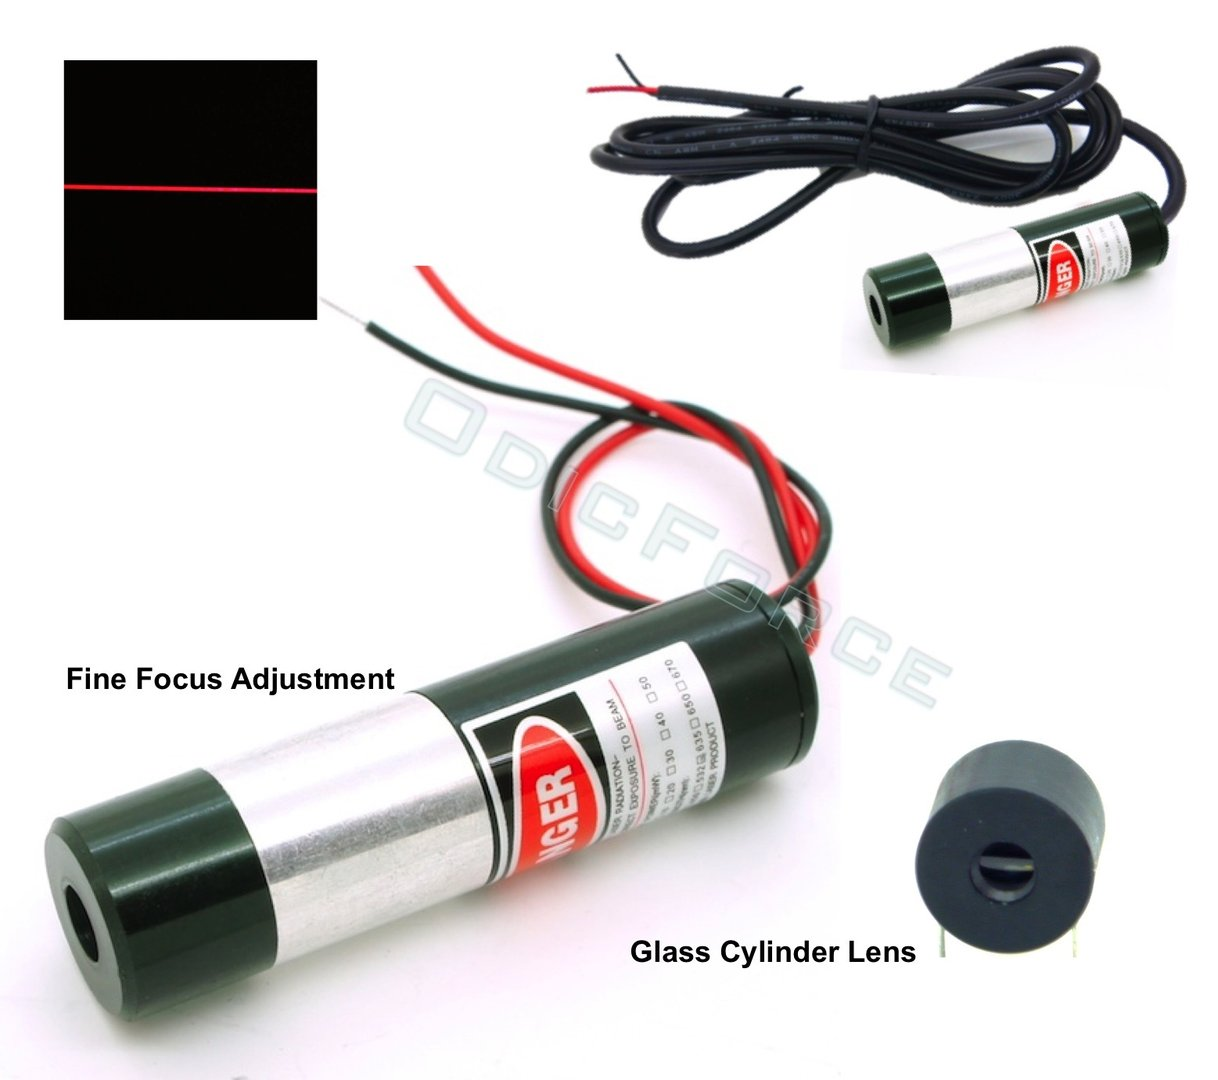 Precision Adjustable Focus 635nm Bright Red Line Laser Modules  5mW (16mm)